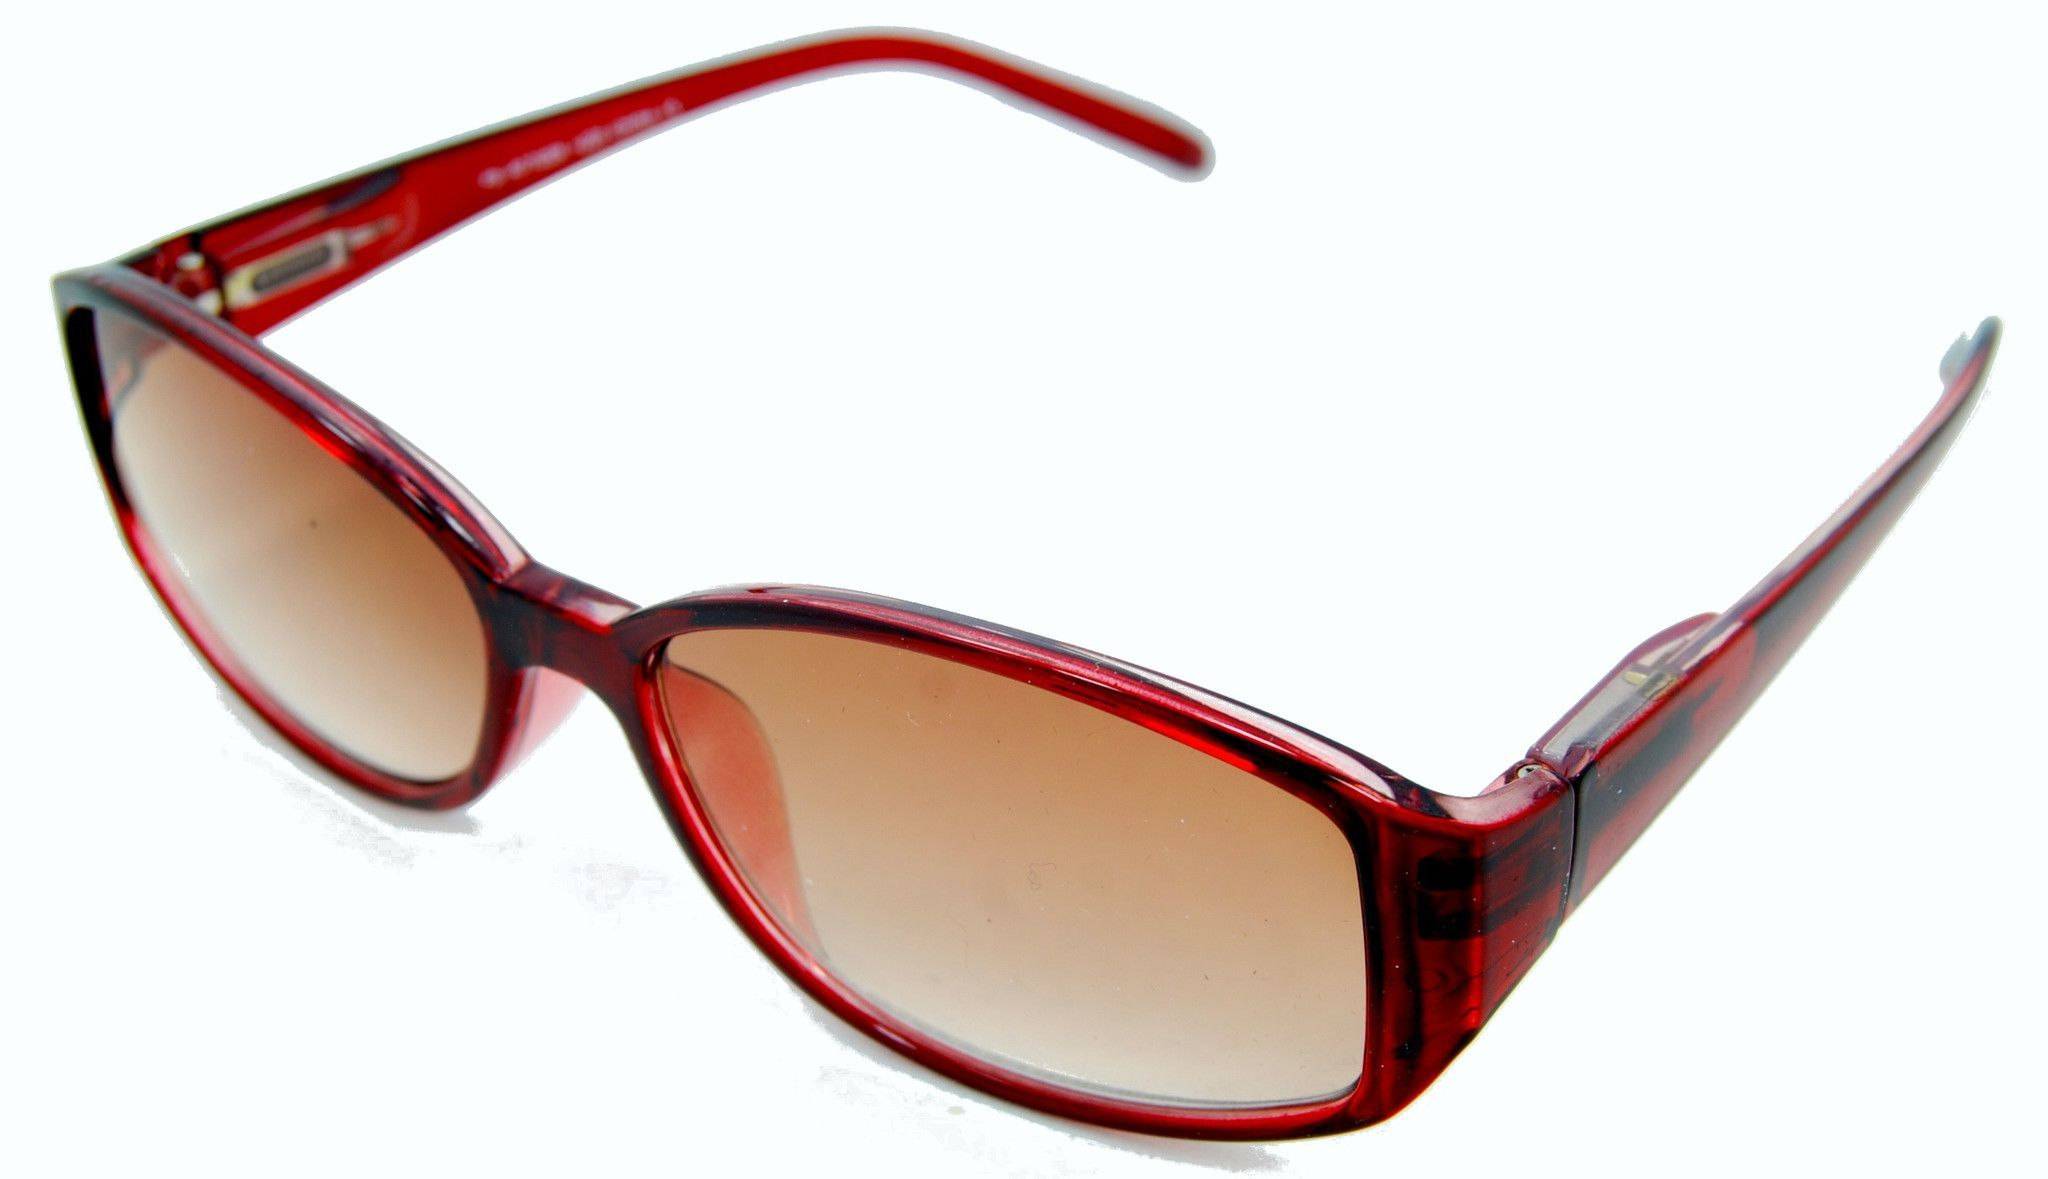 cb9707049a3 Reading in the sun has never been easier - Sunglasses are also full Reading  Glasses! What a great concept! These Reading Sunglasses are NOT Bifocals.